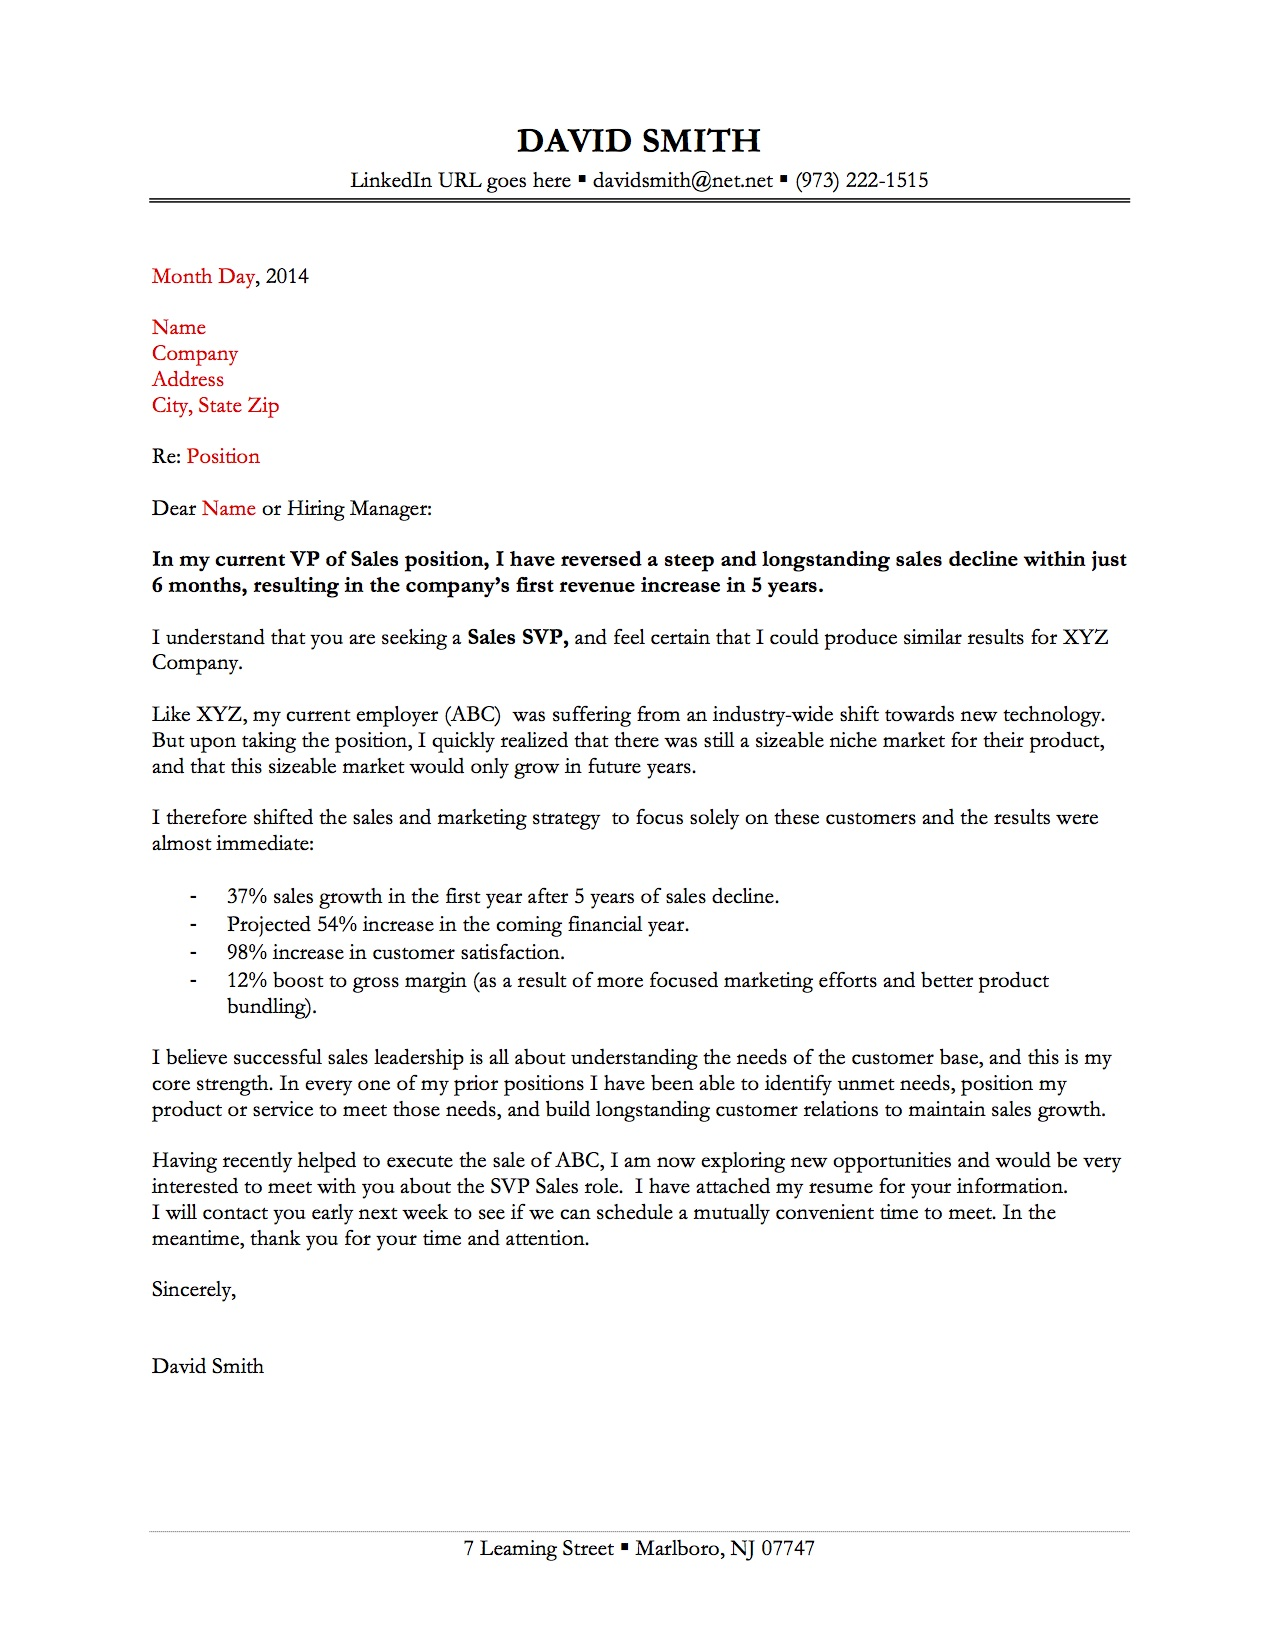 company cover letter sample how to write a professional cover letter to company cover letter - Cover Letter To Company